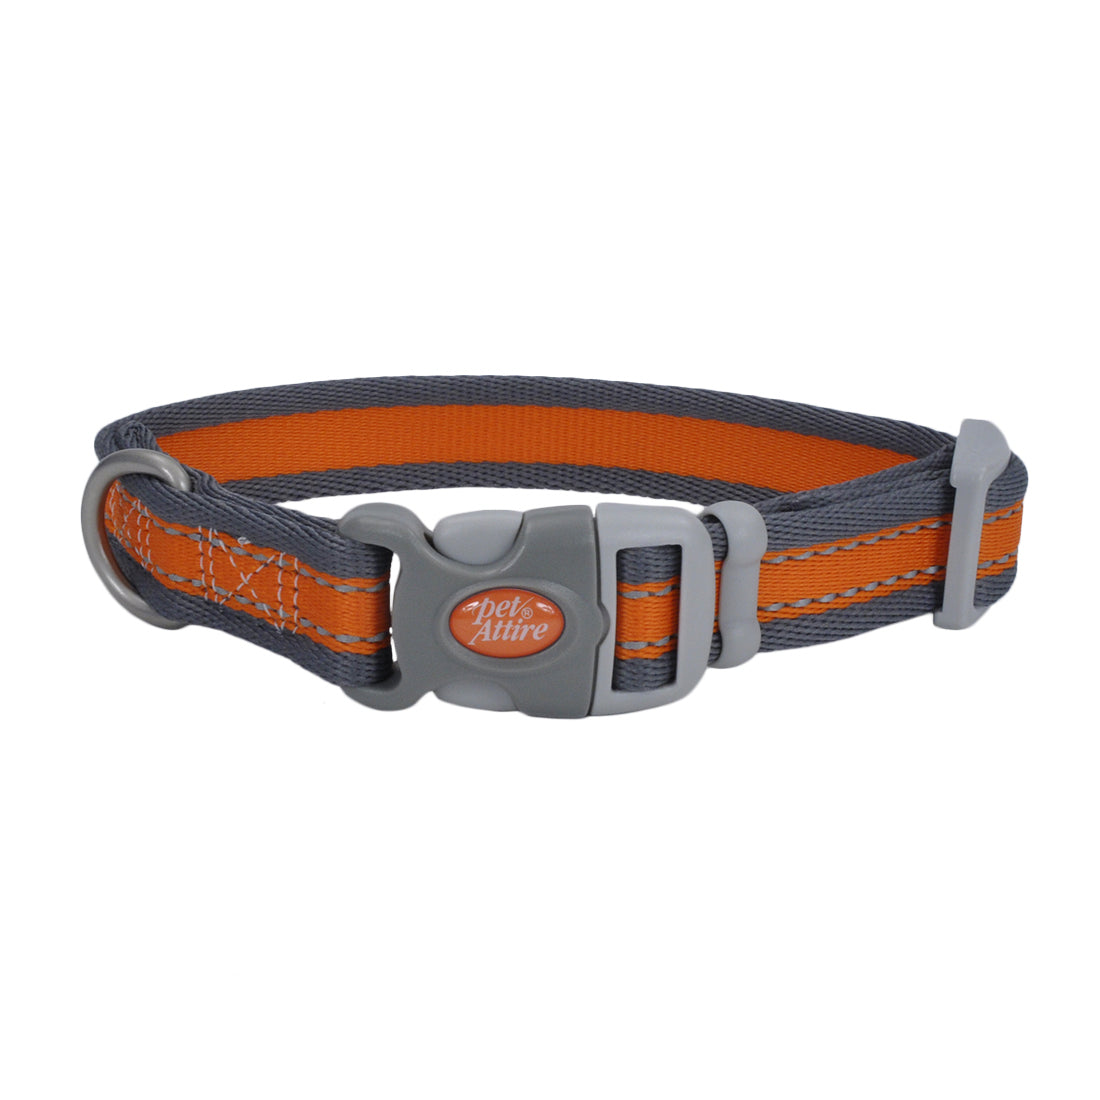 "Coastal Pet Attire Pro Adjustable Reflective Collar 18-26"" - 1"" Orange with Gray"